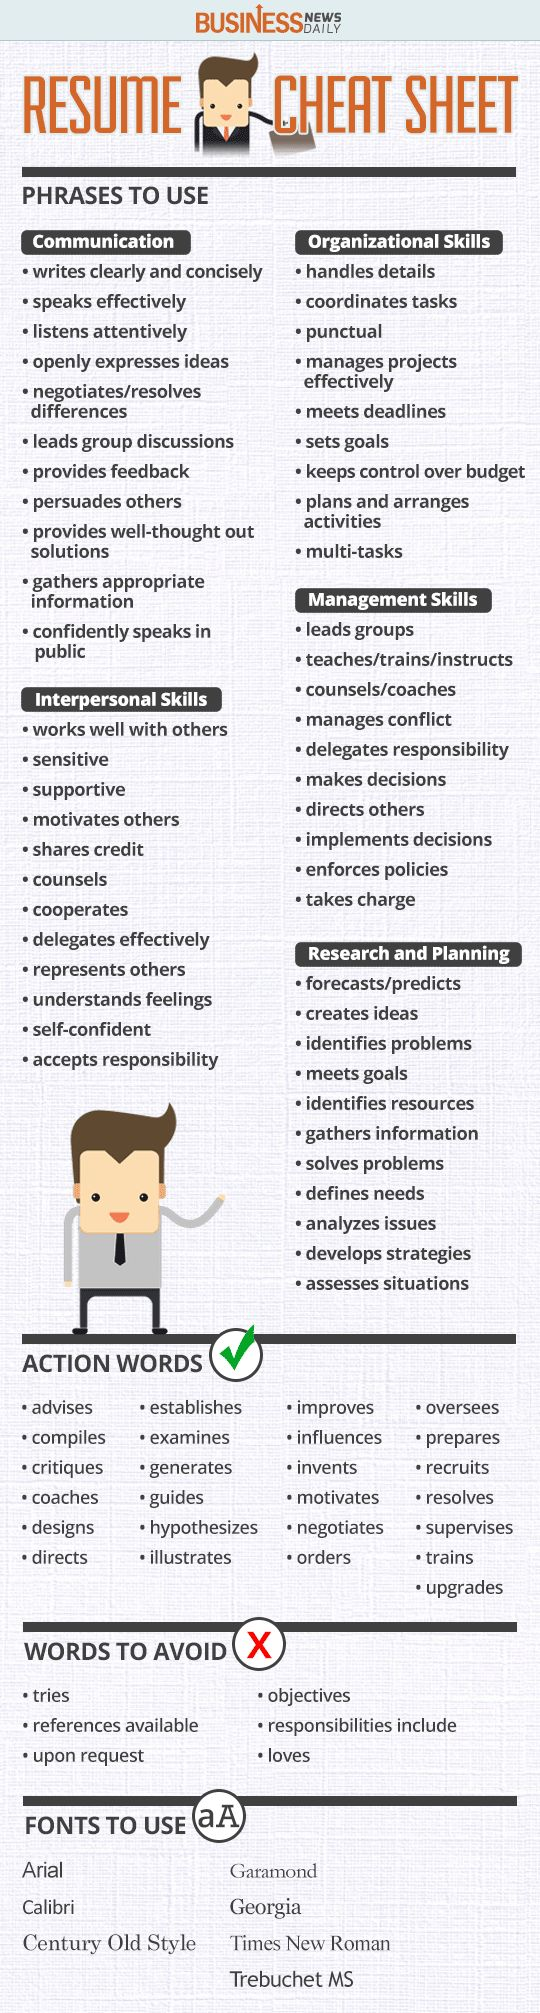 Opposenewapstandardsus  Mesmerizing  Ideas About Resume On Pinterest  Cv Format Resume Cv And  With Fetching Resume Cheat Sheet Infographic Andrews Almost Done With A Complete Unit On Employment Which With Attractive Does Microsoft Word Have A Resume Template Also Sample Property Manager Resume In Addition It Recruiter Resume And Sunday School Teacher Resume As Well As How To Format Education On Resume Additionally How To Write A One Page Resume From Pinterestcom With Opposenewapstandardsus  Fetching  Ideas About Resume On Pinterest  Cv Format Resume Cv And  With Attractive Resume Cheat Sheet Infographic Andrews Almost Done With A Complete Unit On Employment Which And Mesmerizing Does Microsoft Word Have A Resume Template Also Sample Property Manager Resume In Addition It Recruiter Resume From Pinterestcom